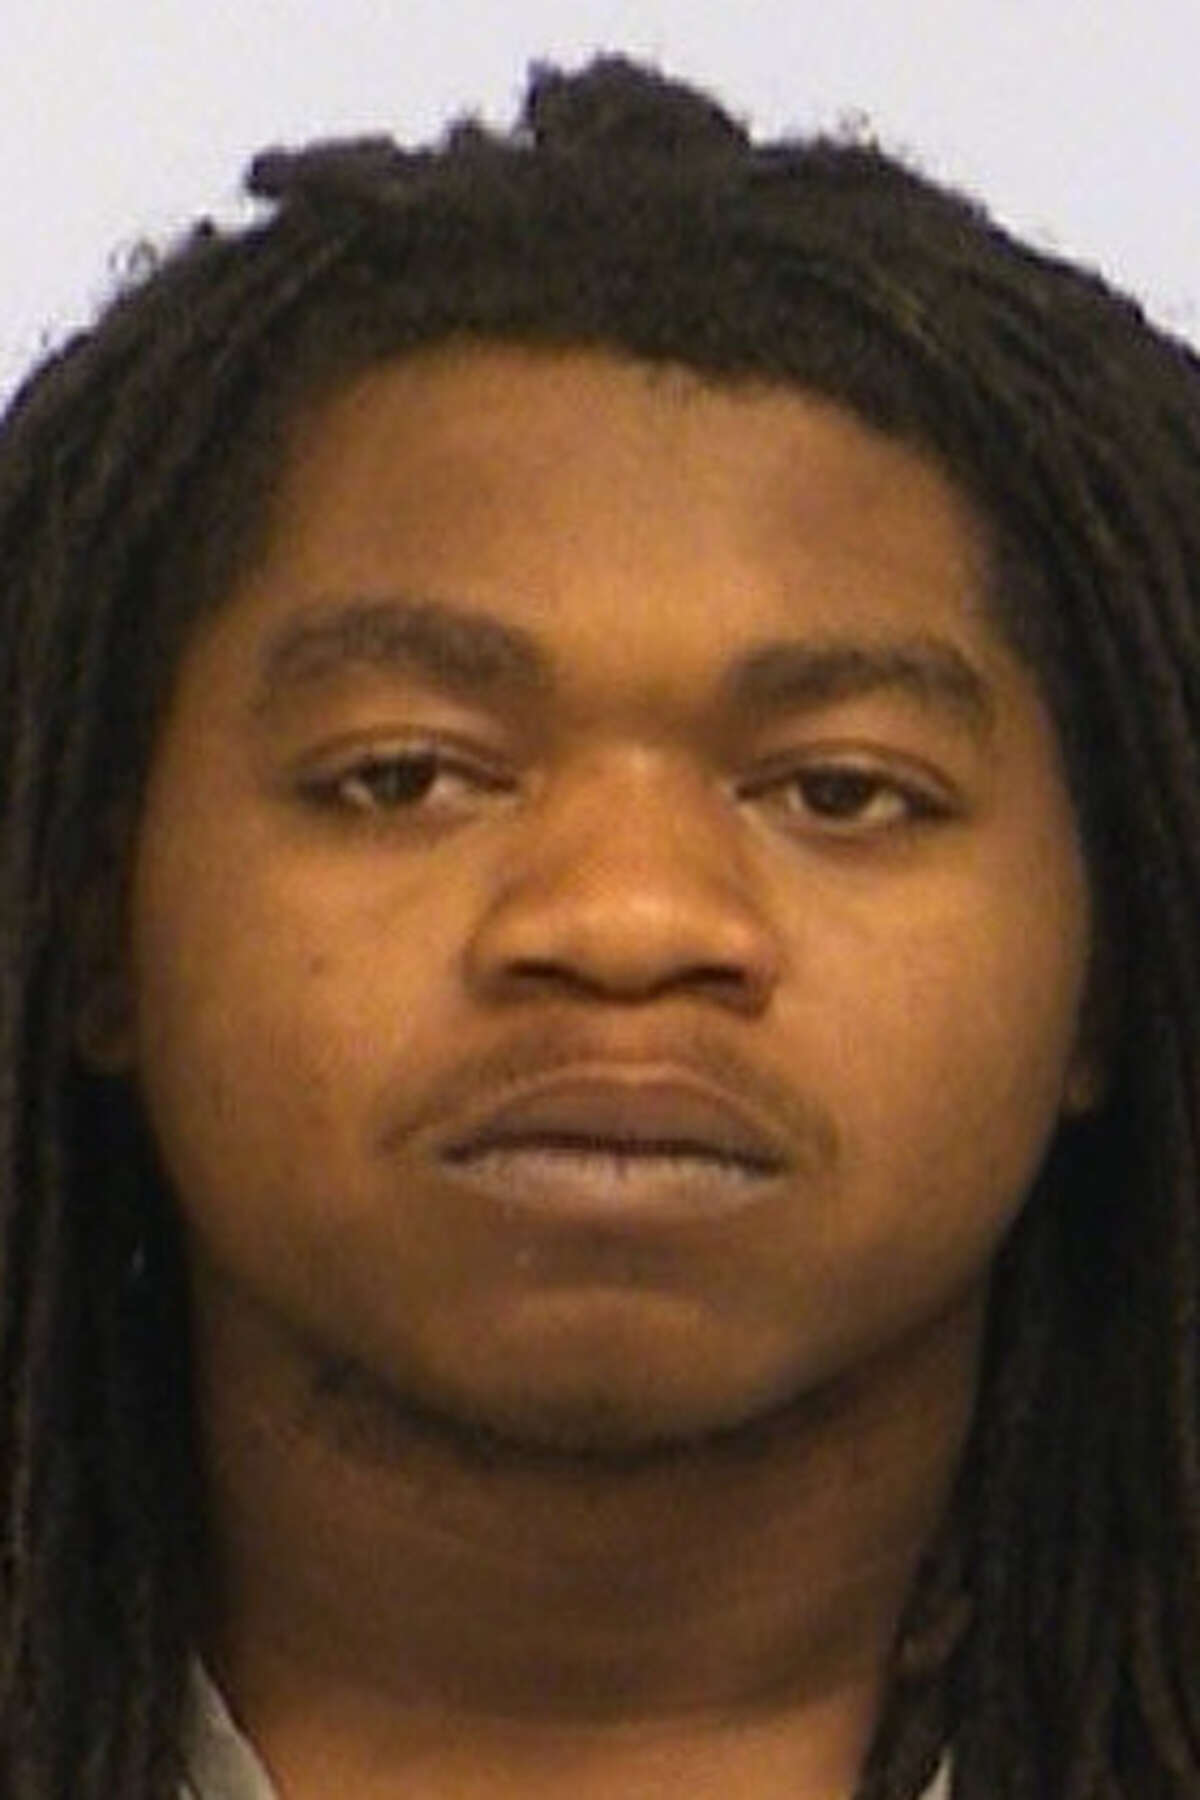 Rashad Owens is accused of running down a crowd of people at the South by Southwest music festival.